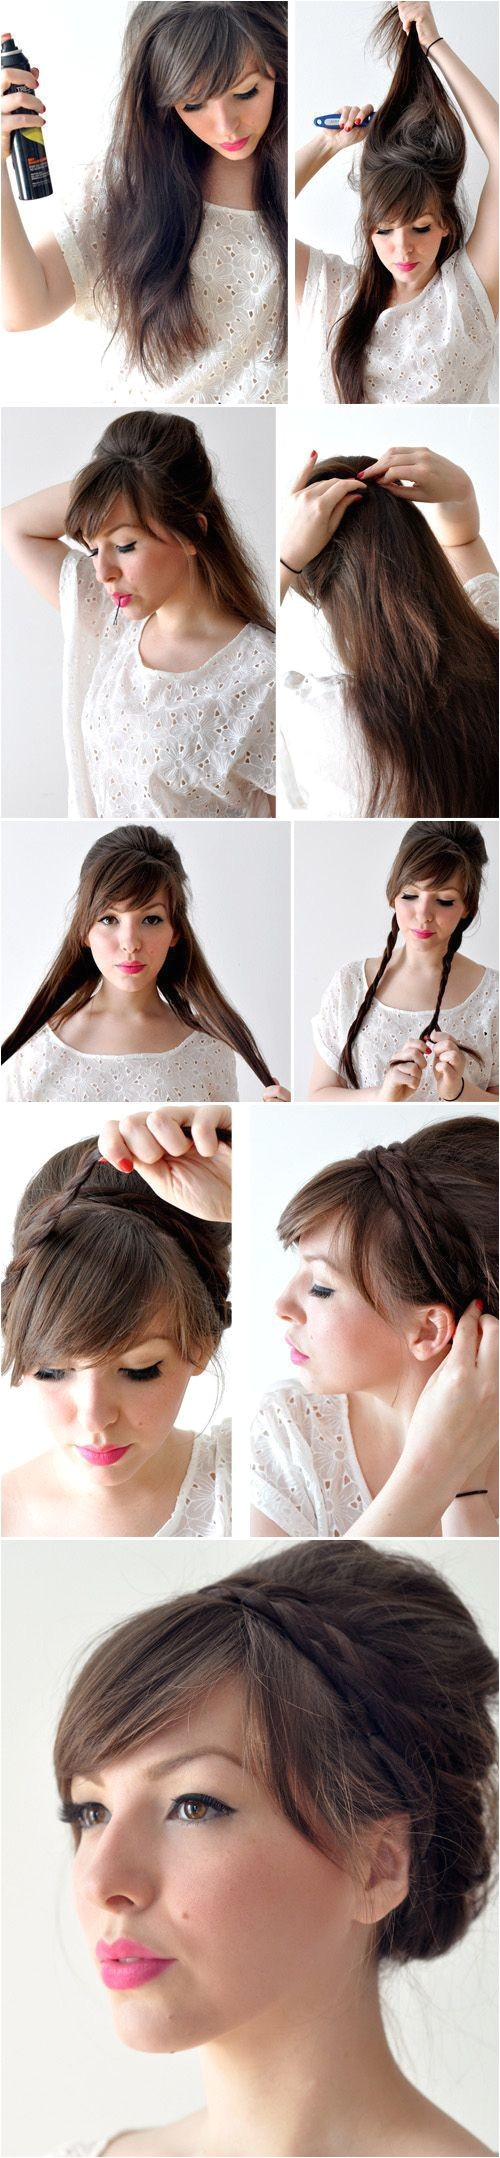 creative hairstyles that you can easily do at 27 pics